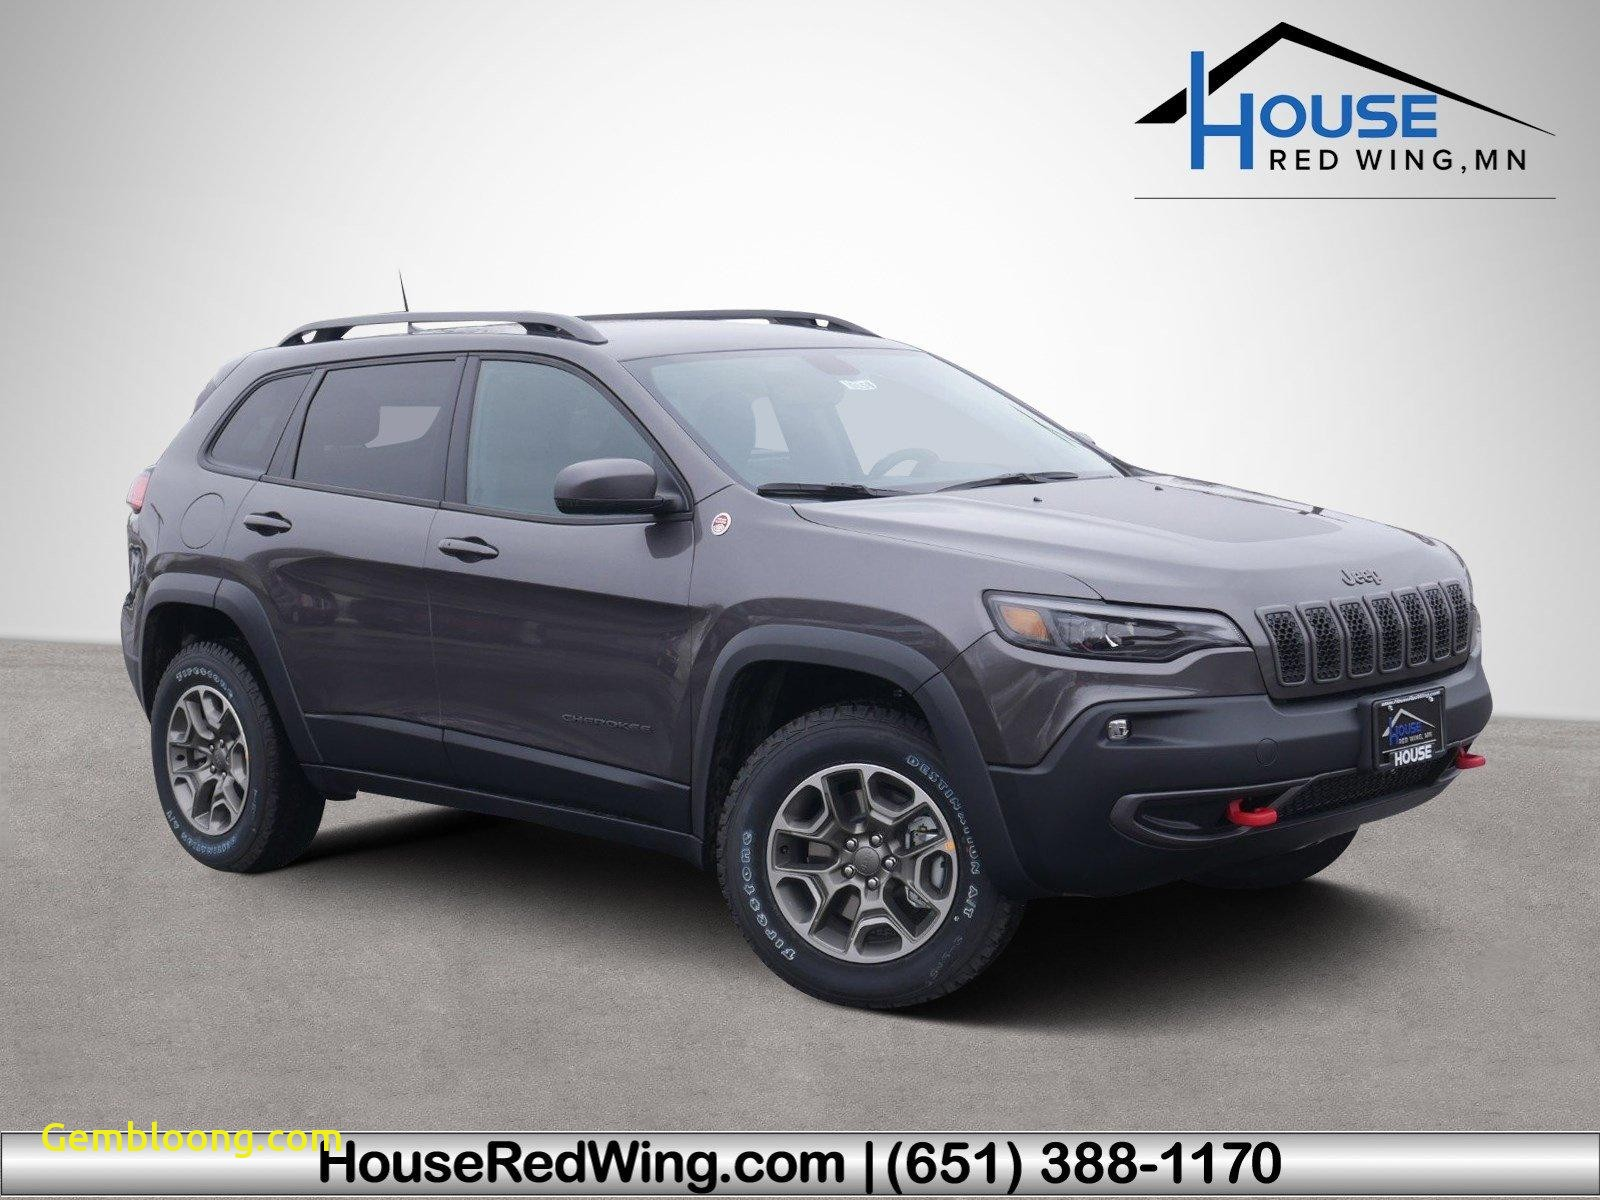 Used Cars for Sale Near Me Under 1000 Best Of 2020 Jeep Cherokee for Sale In Red Wing 1c4pjmbx6ld